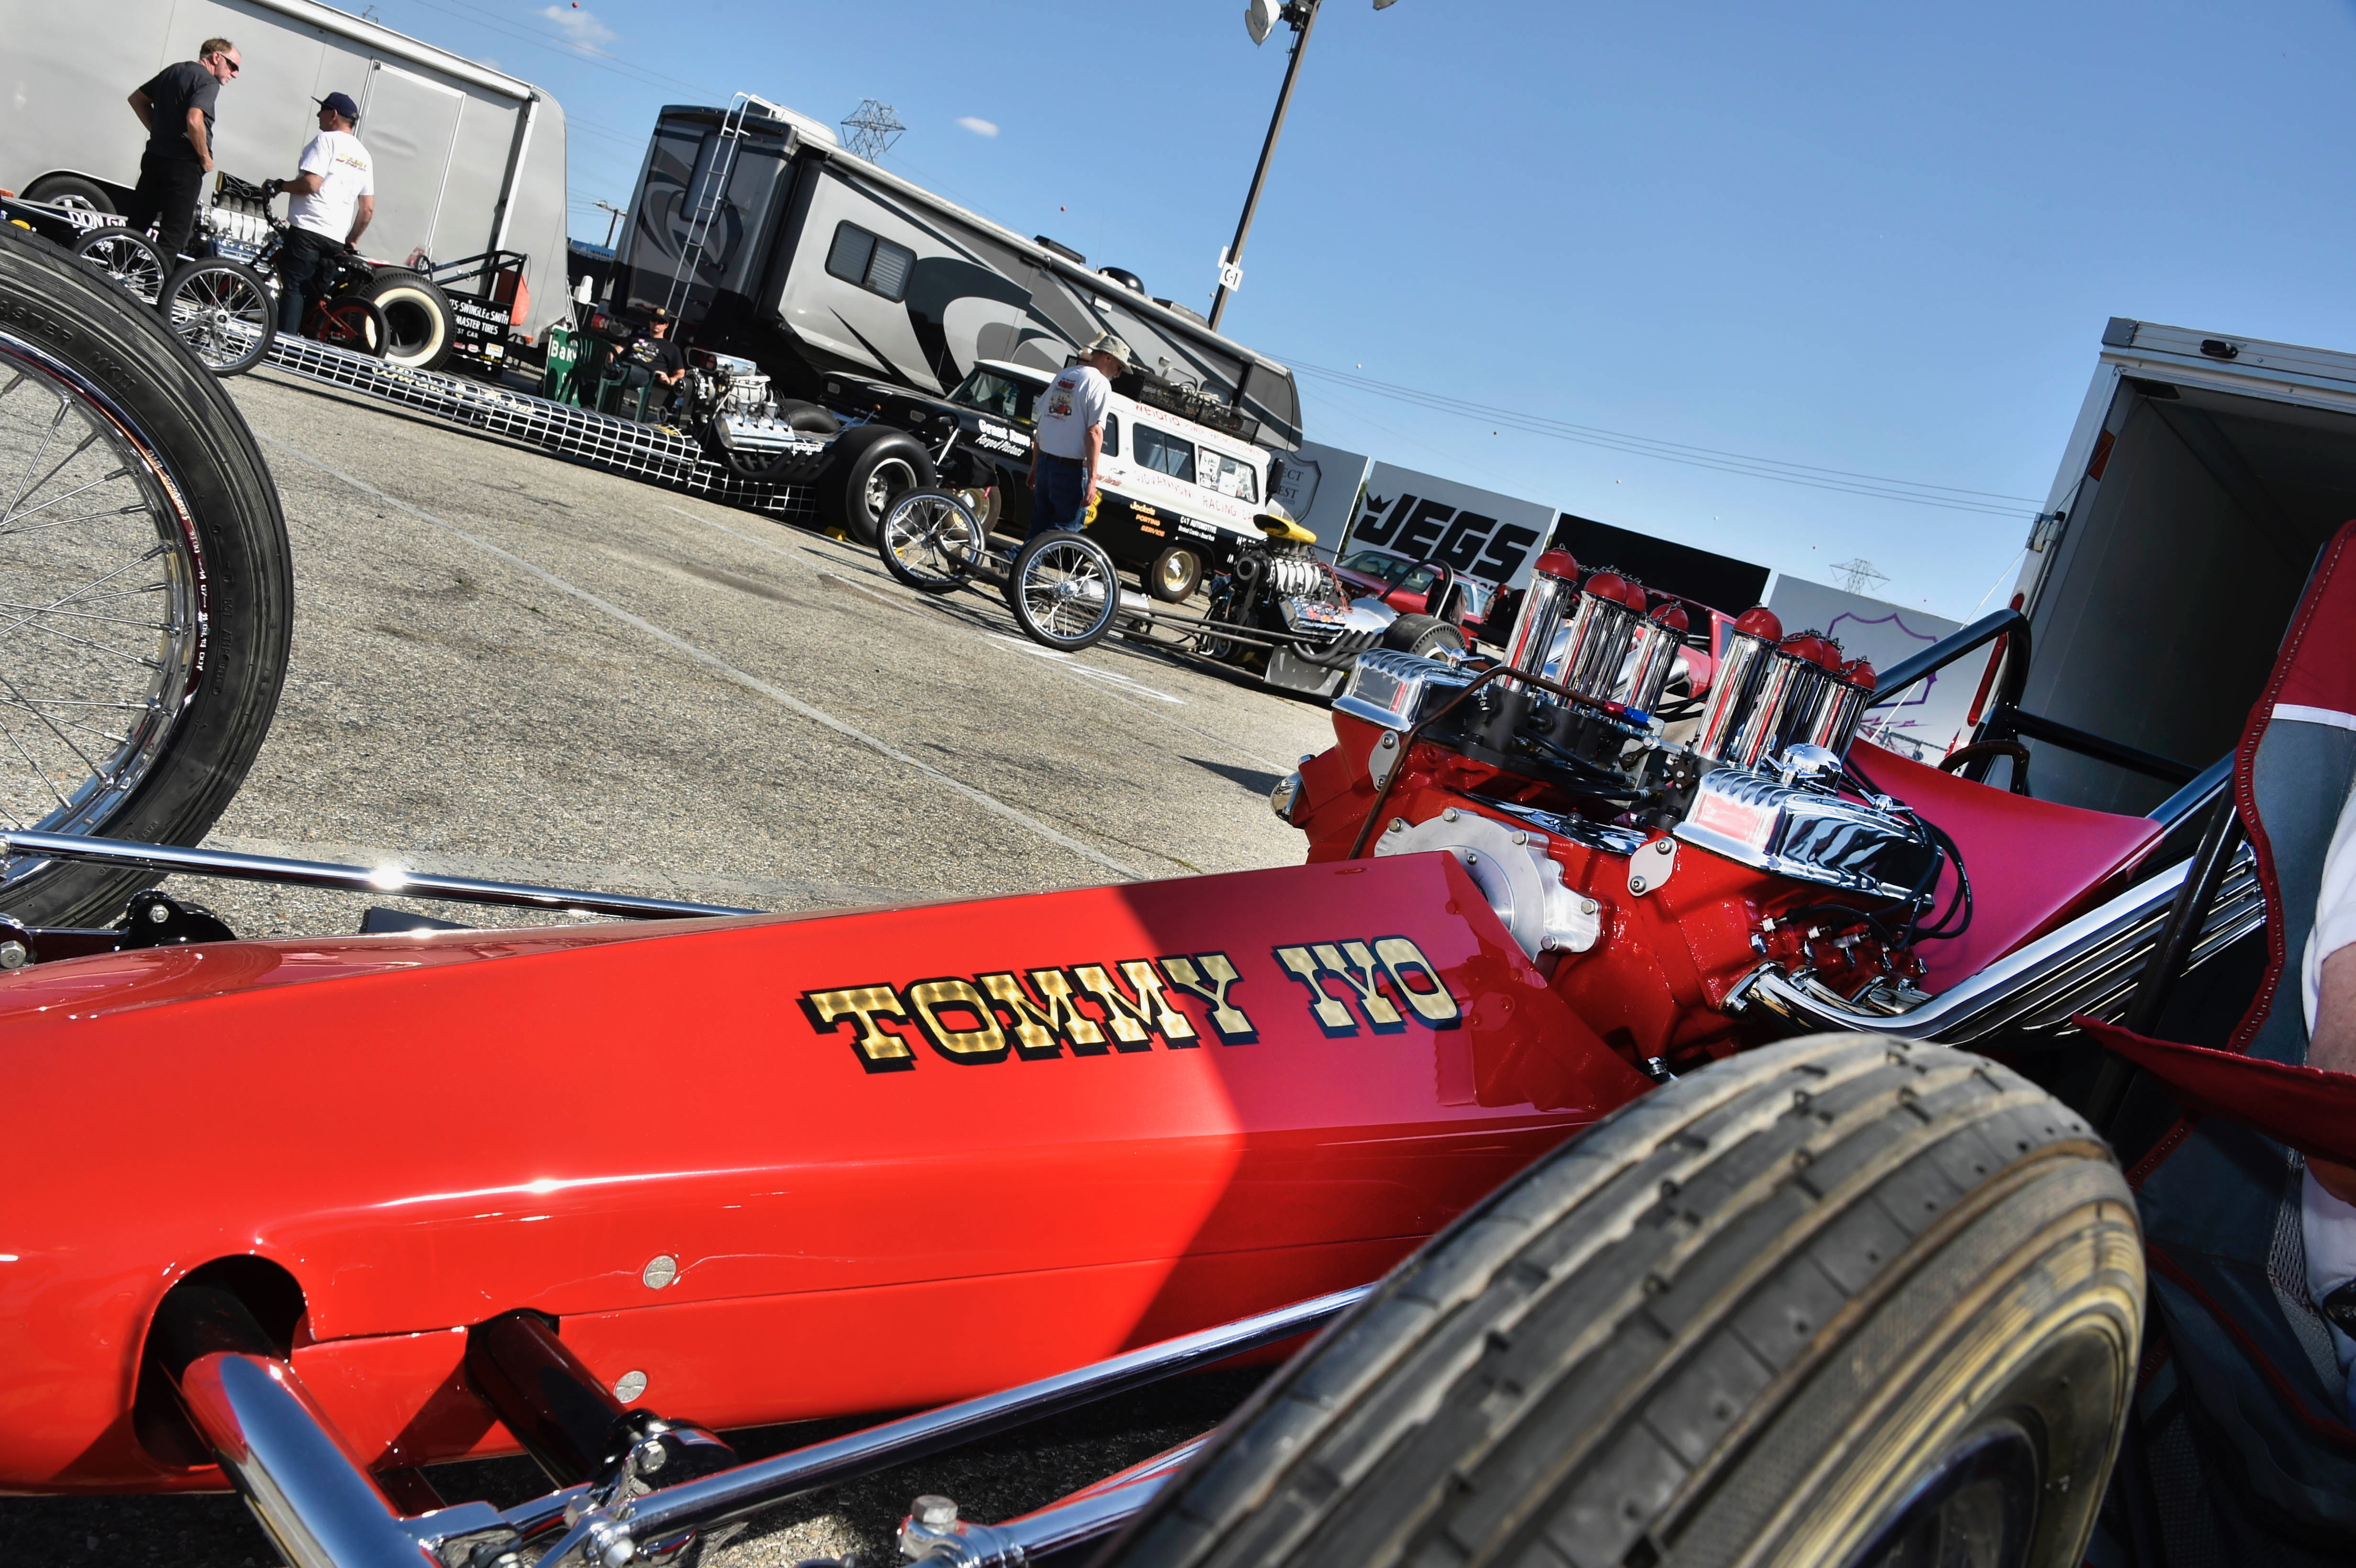 Nitro Revival has 'em 'hooked' on drag racing history